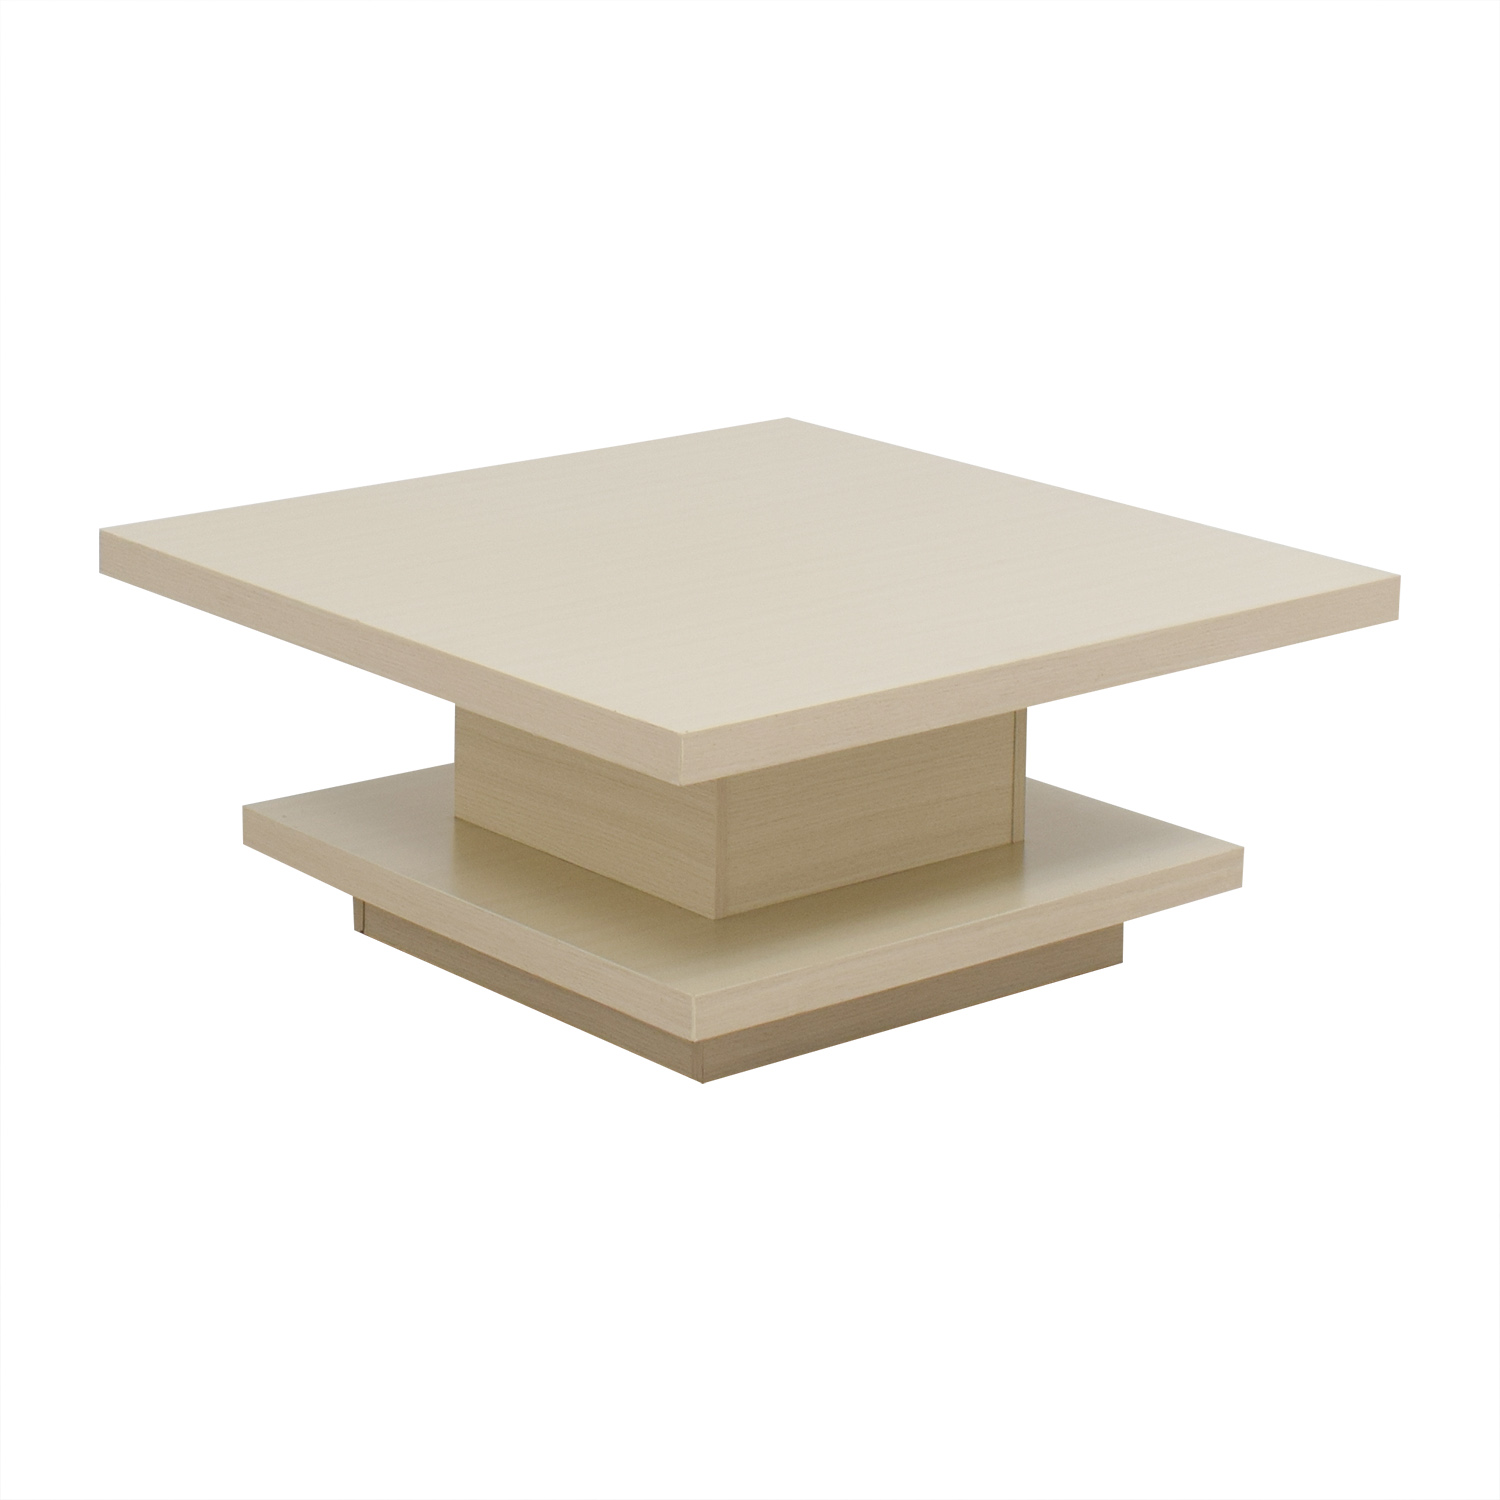 Furniture of America Furniture of America Modern Pagoda Ivory Coffee Table discount